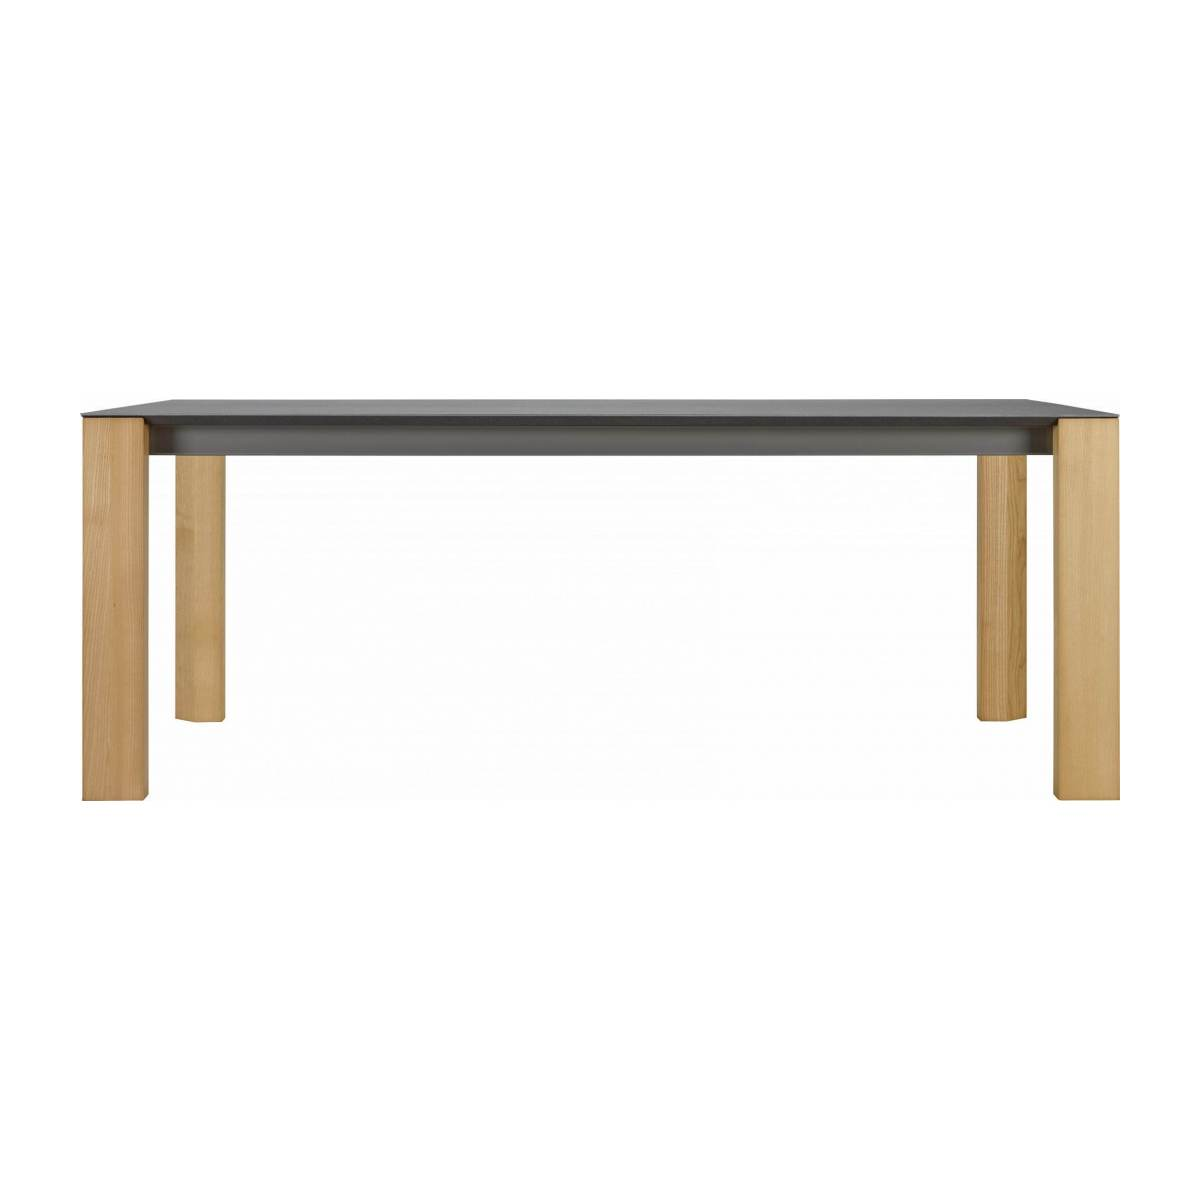 White ceramic dining table 200 cm n°1